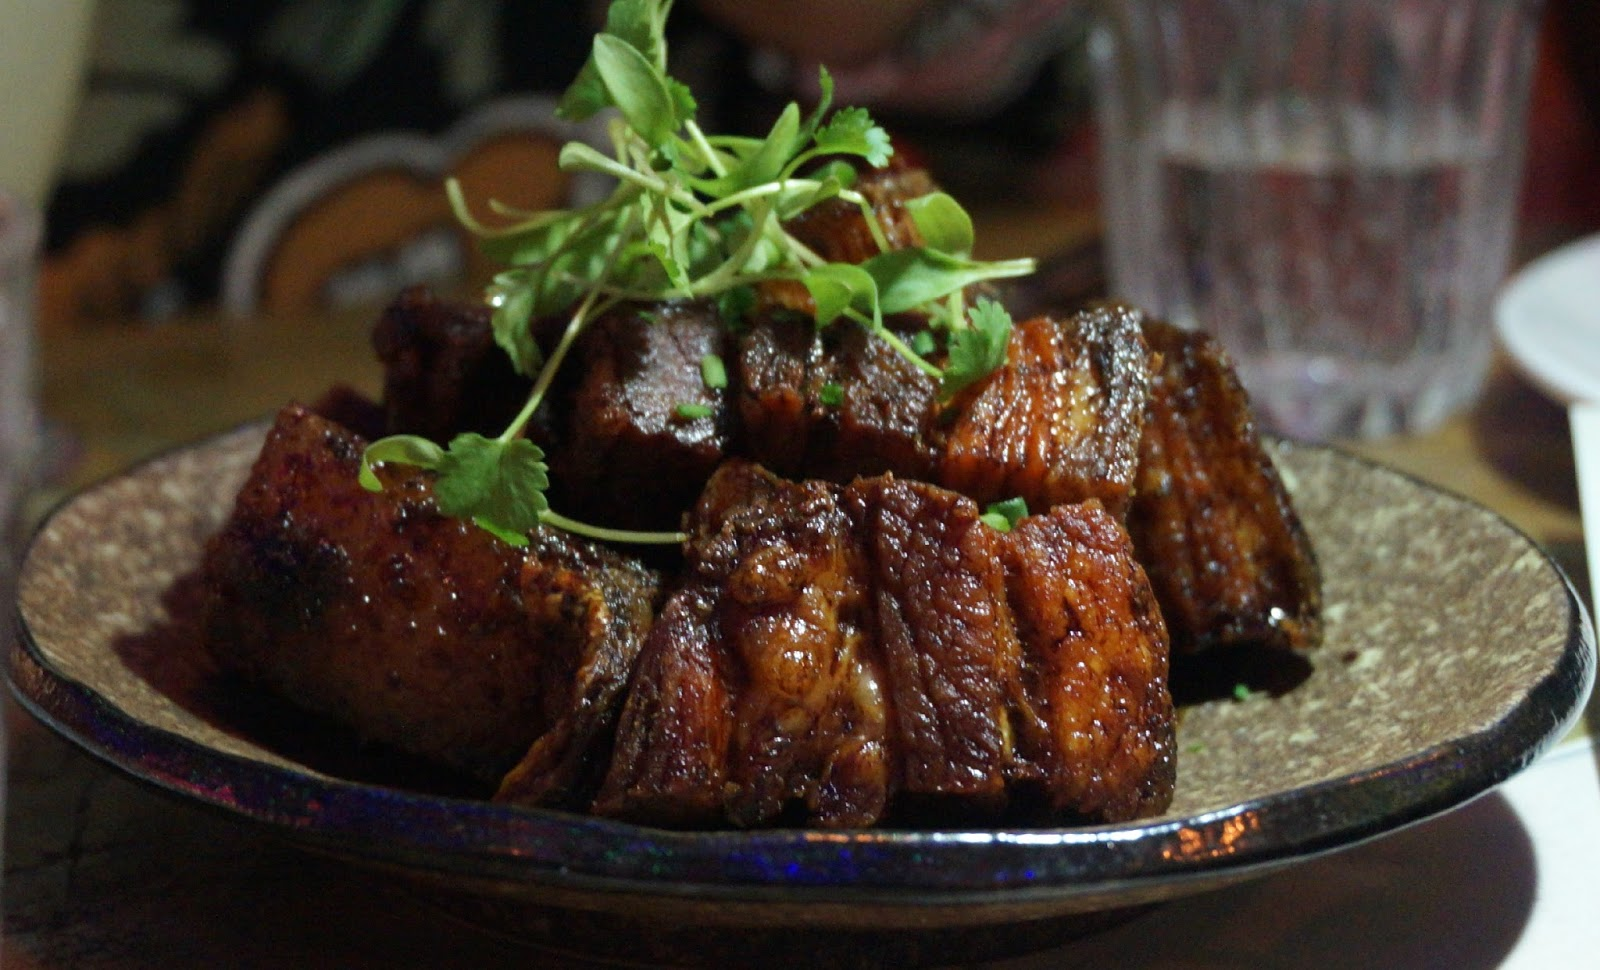 Slow cooked, crispy fried pork belly in a sweet soy sauce